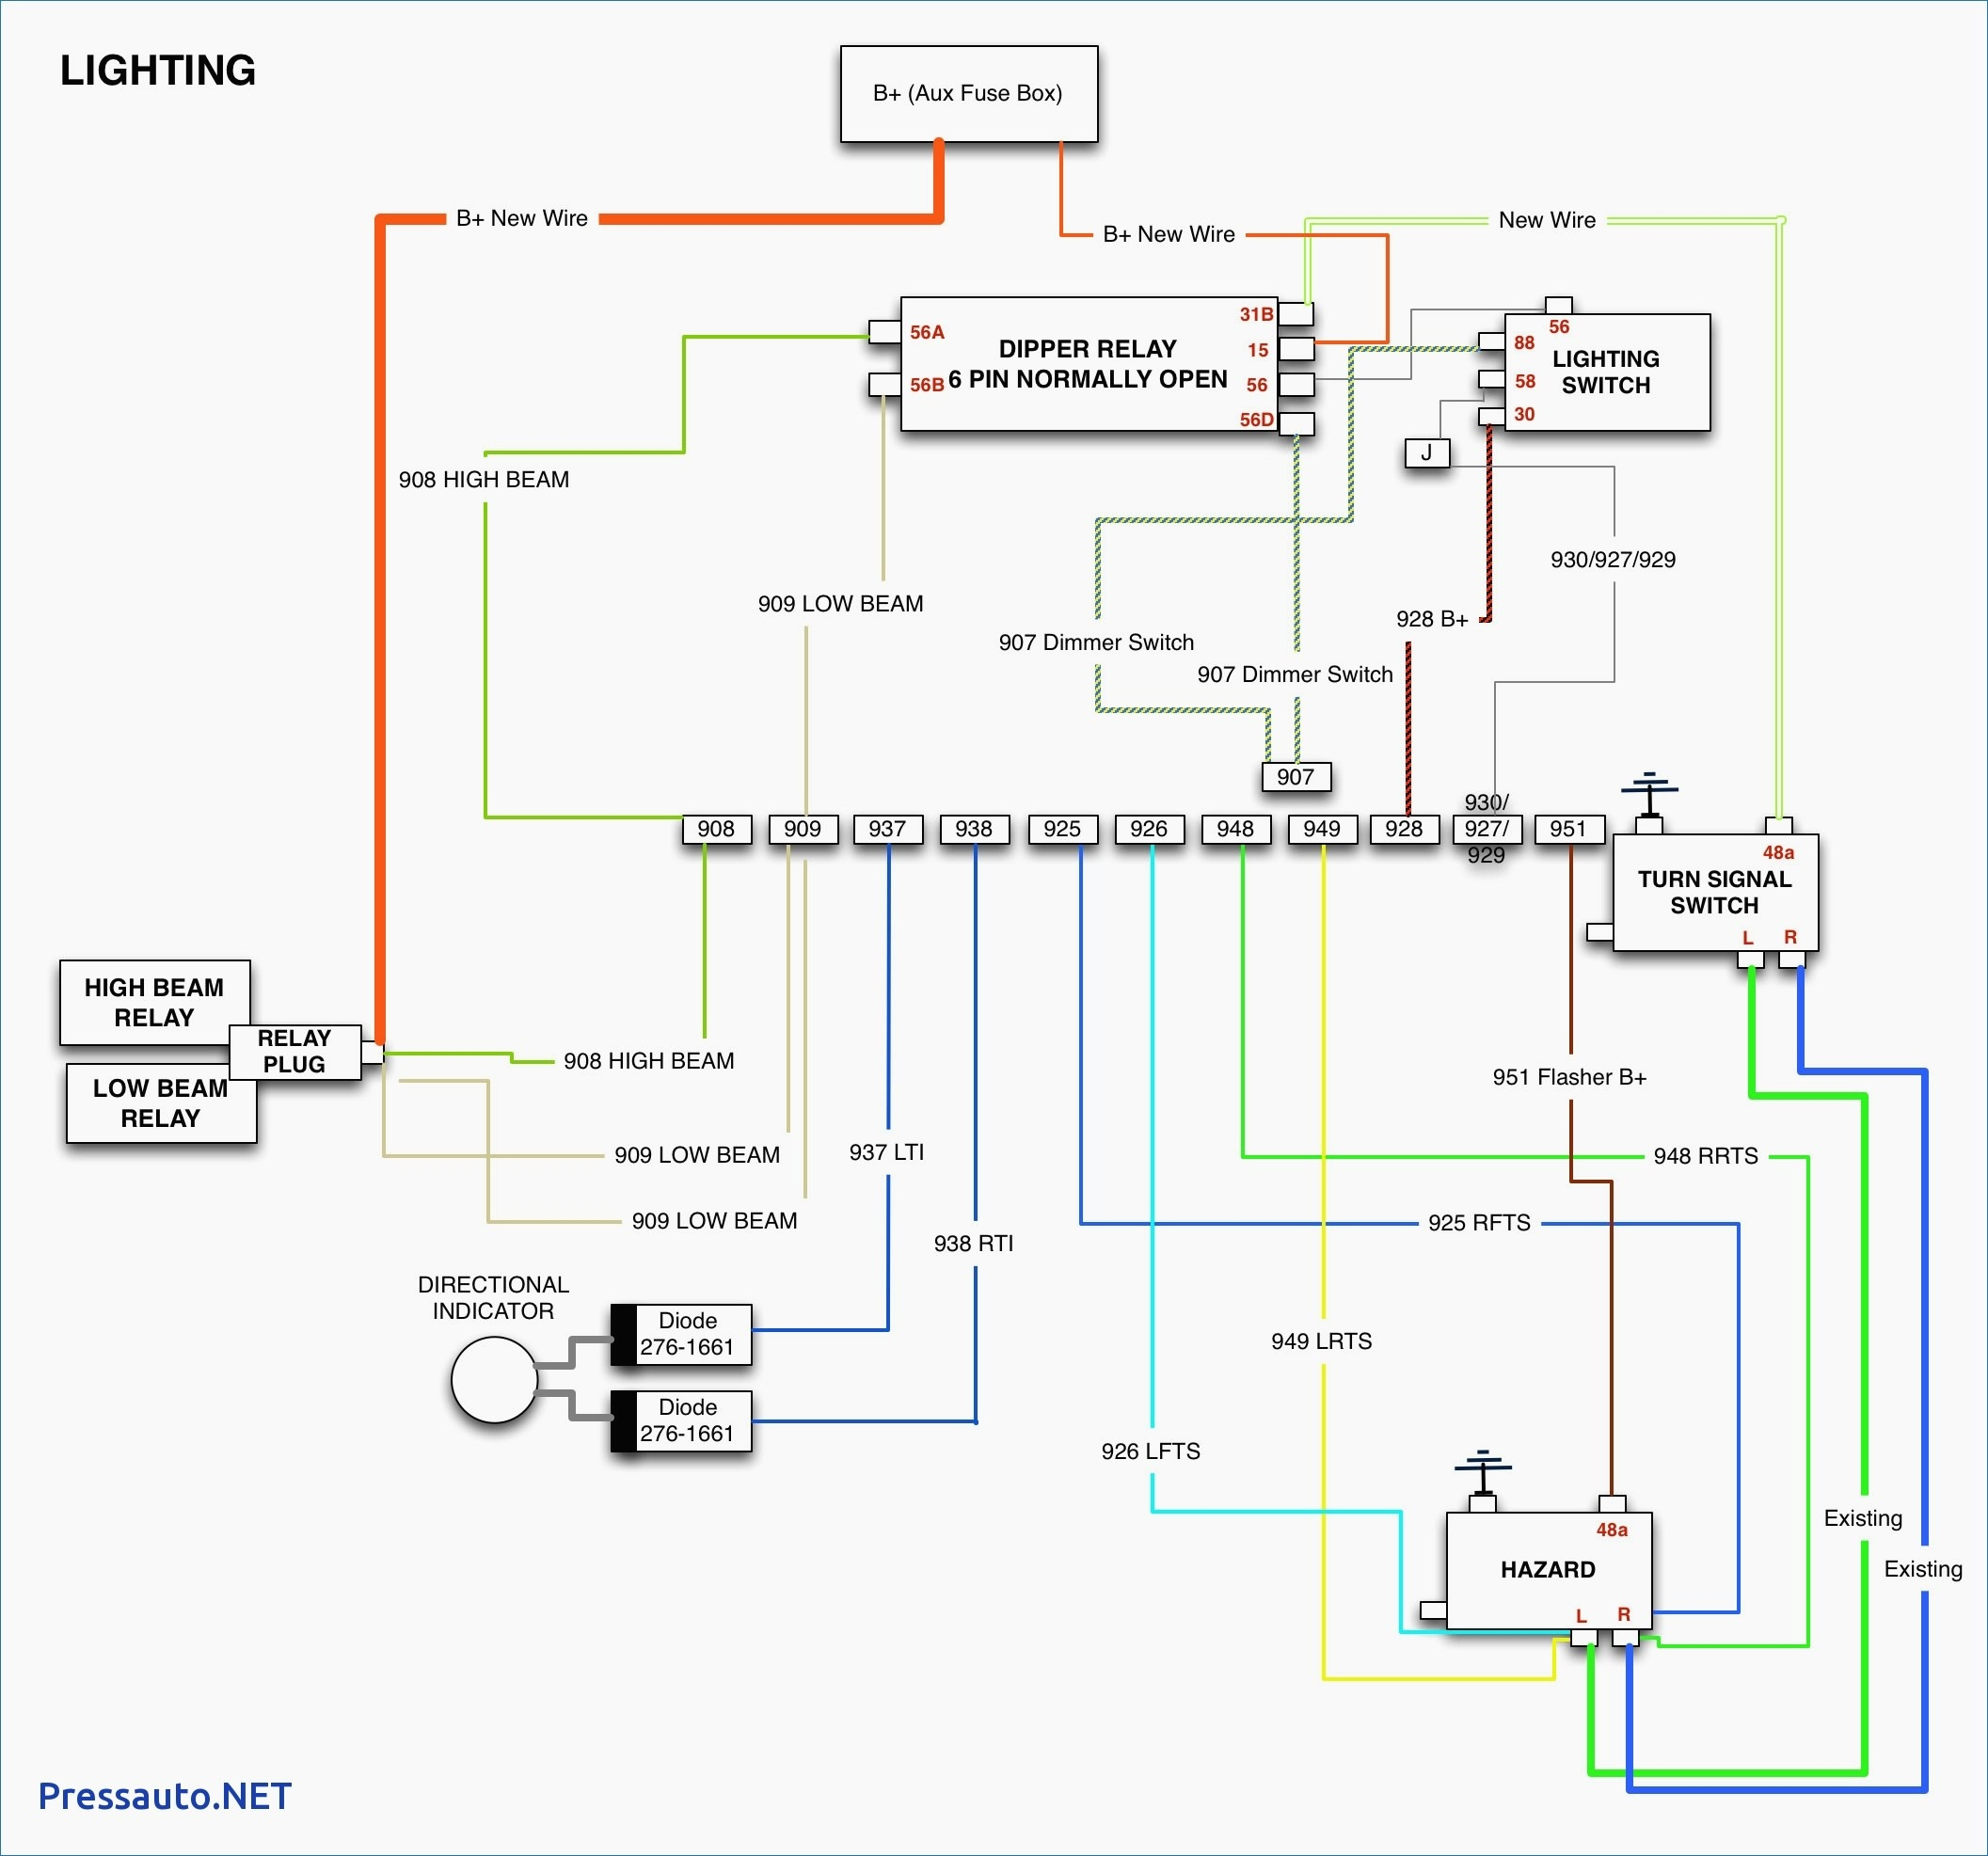 ribu1c wiring diagram Download-Wiring Diagram for Standard Relay Best Ribu1c Wiring Diagram 18-a